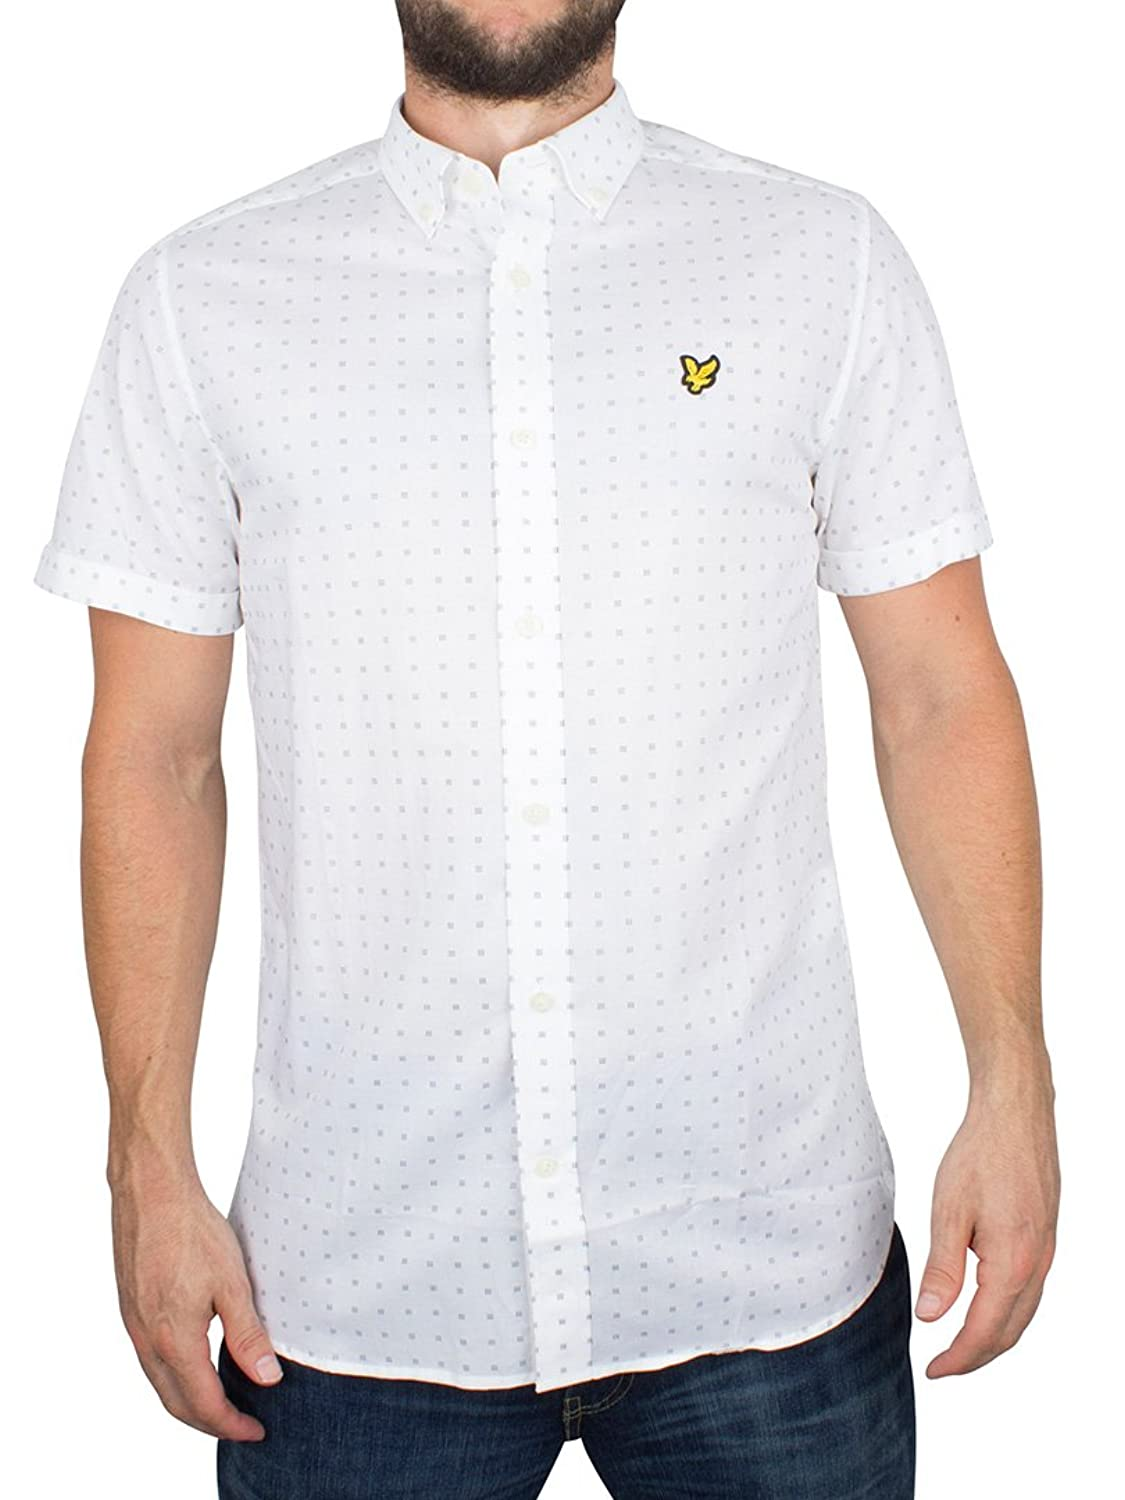 Lyle & Scott Herren All Over-Platz-Punkt-Druck Kurzarmshirt, Weiß